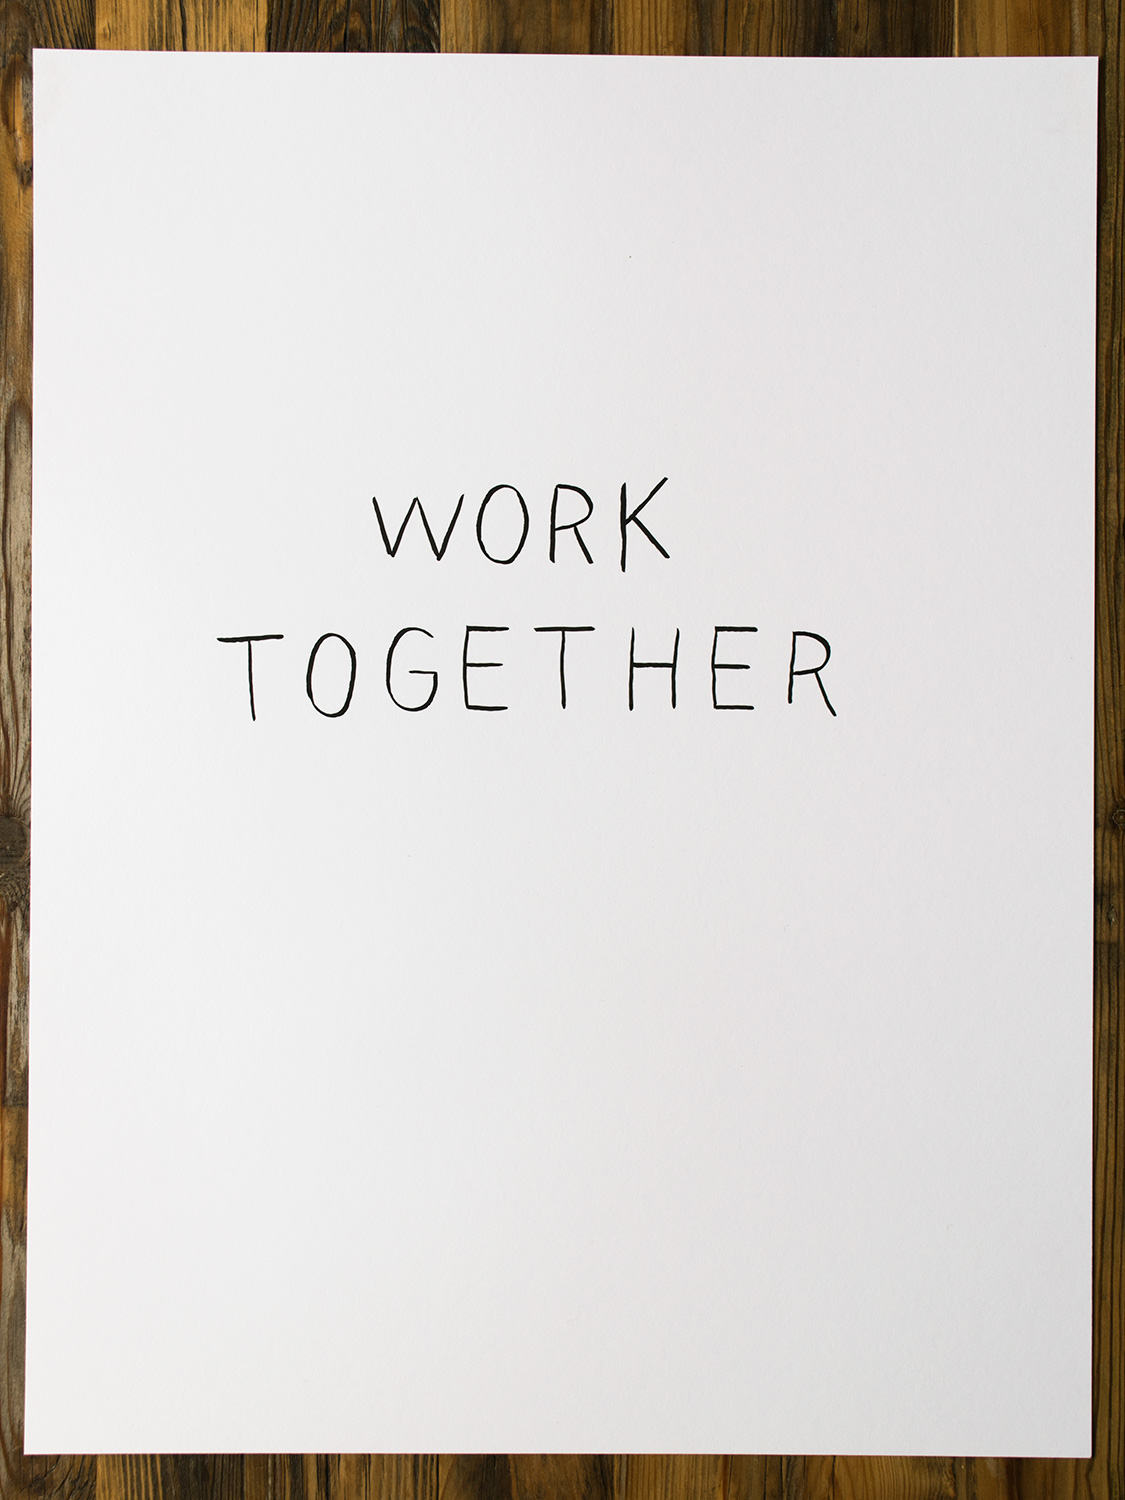 work_together-1500x1125.jpg